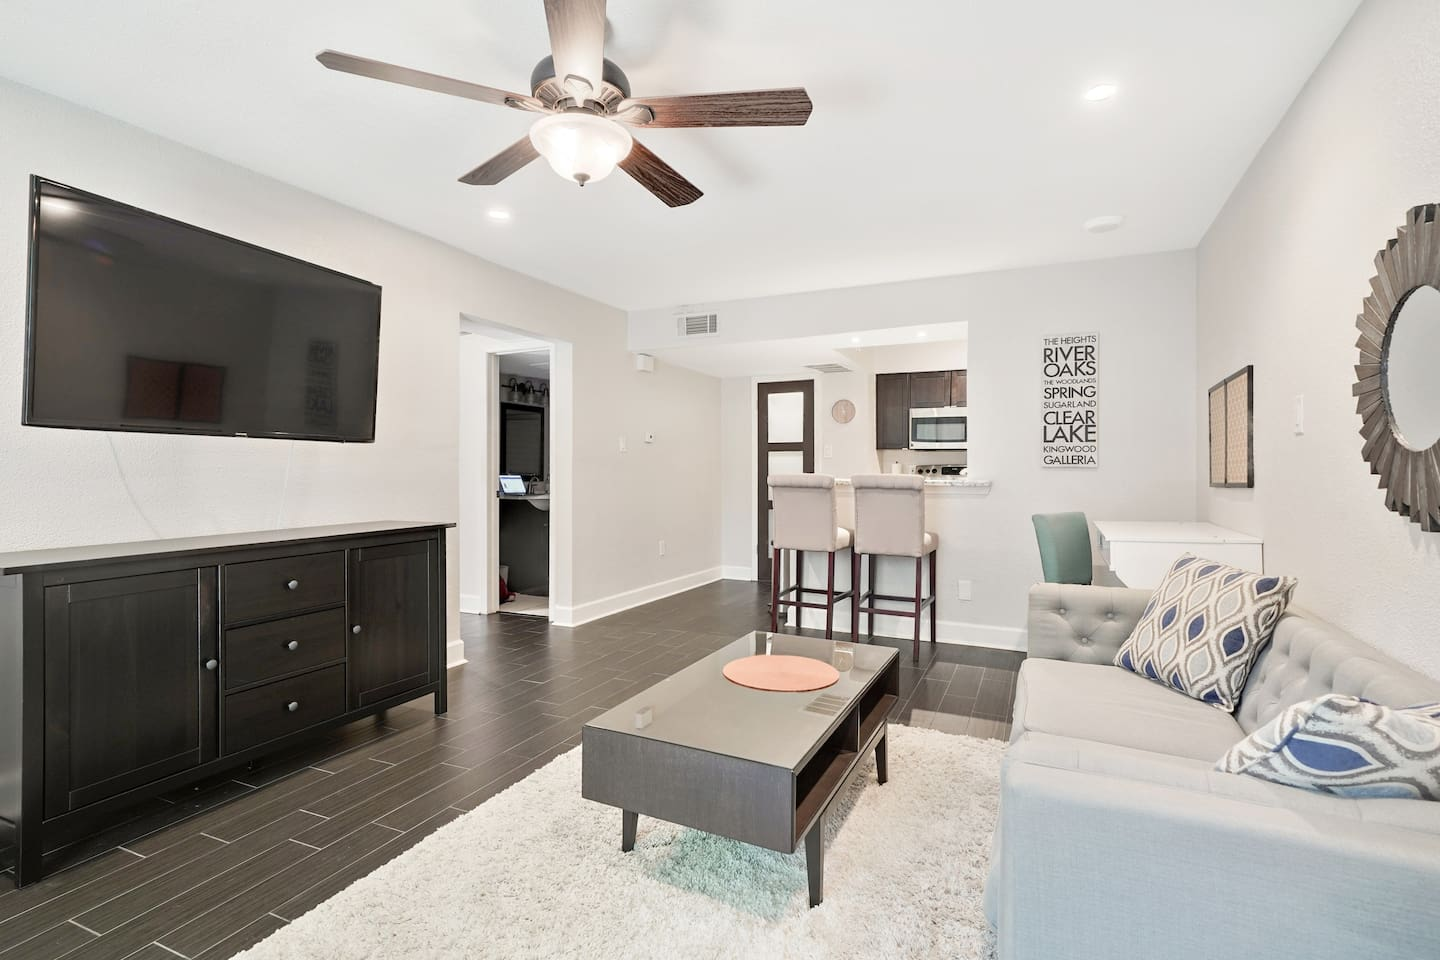 Relax and unwind in this modern and comfy room